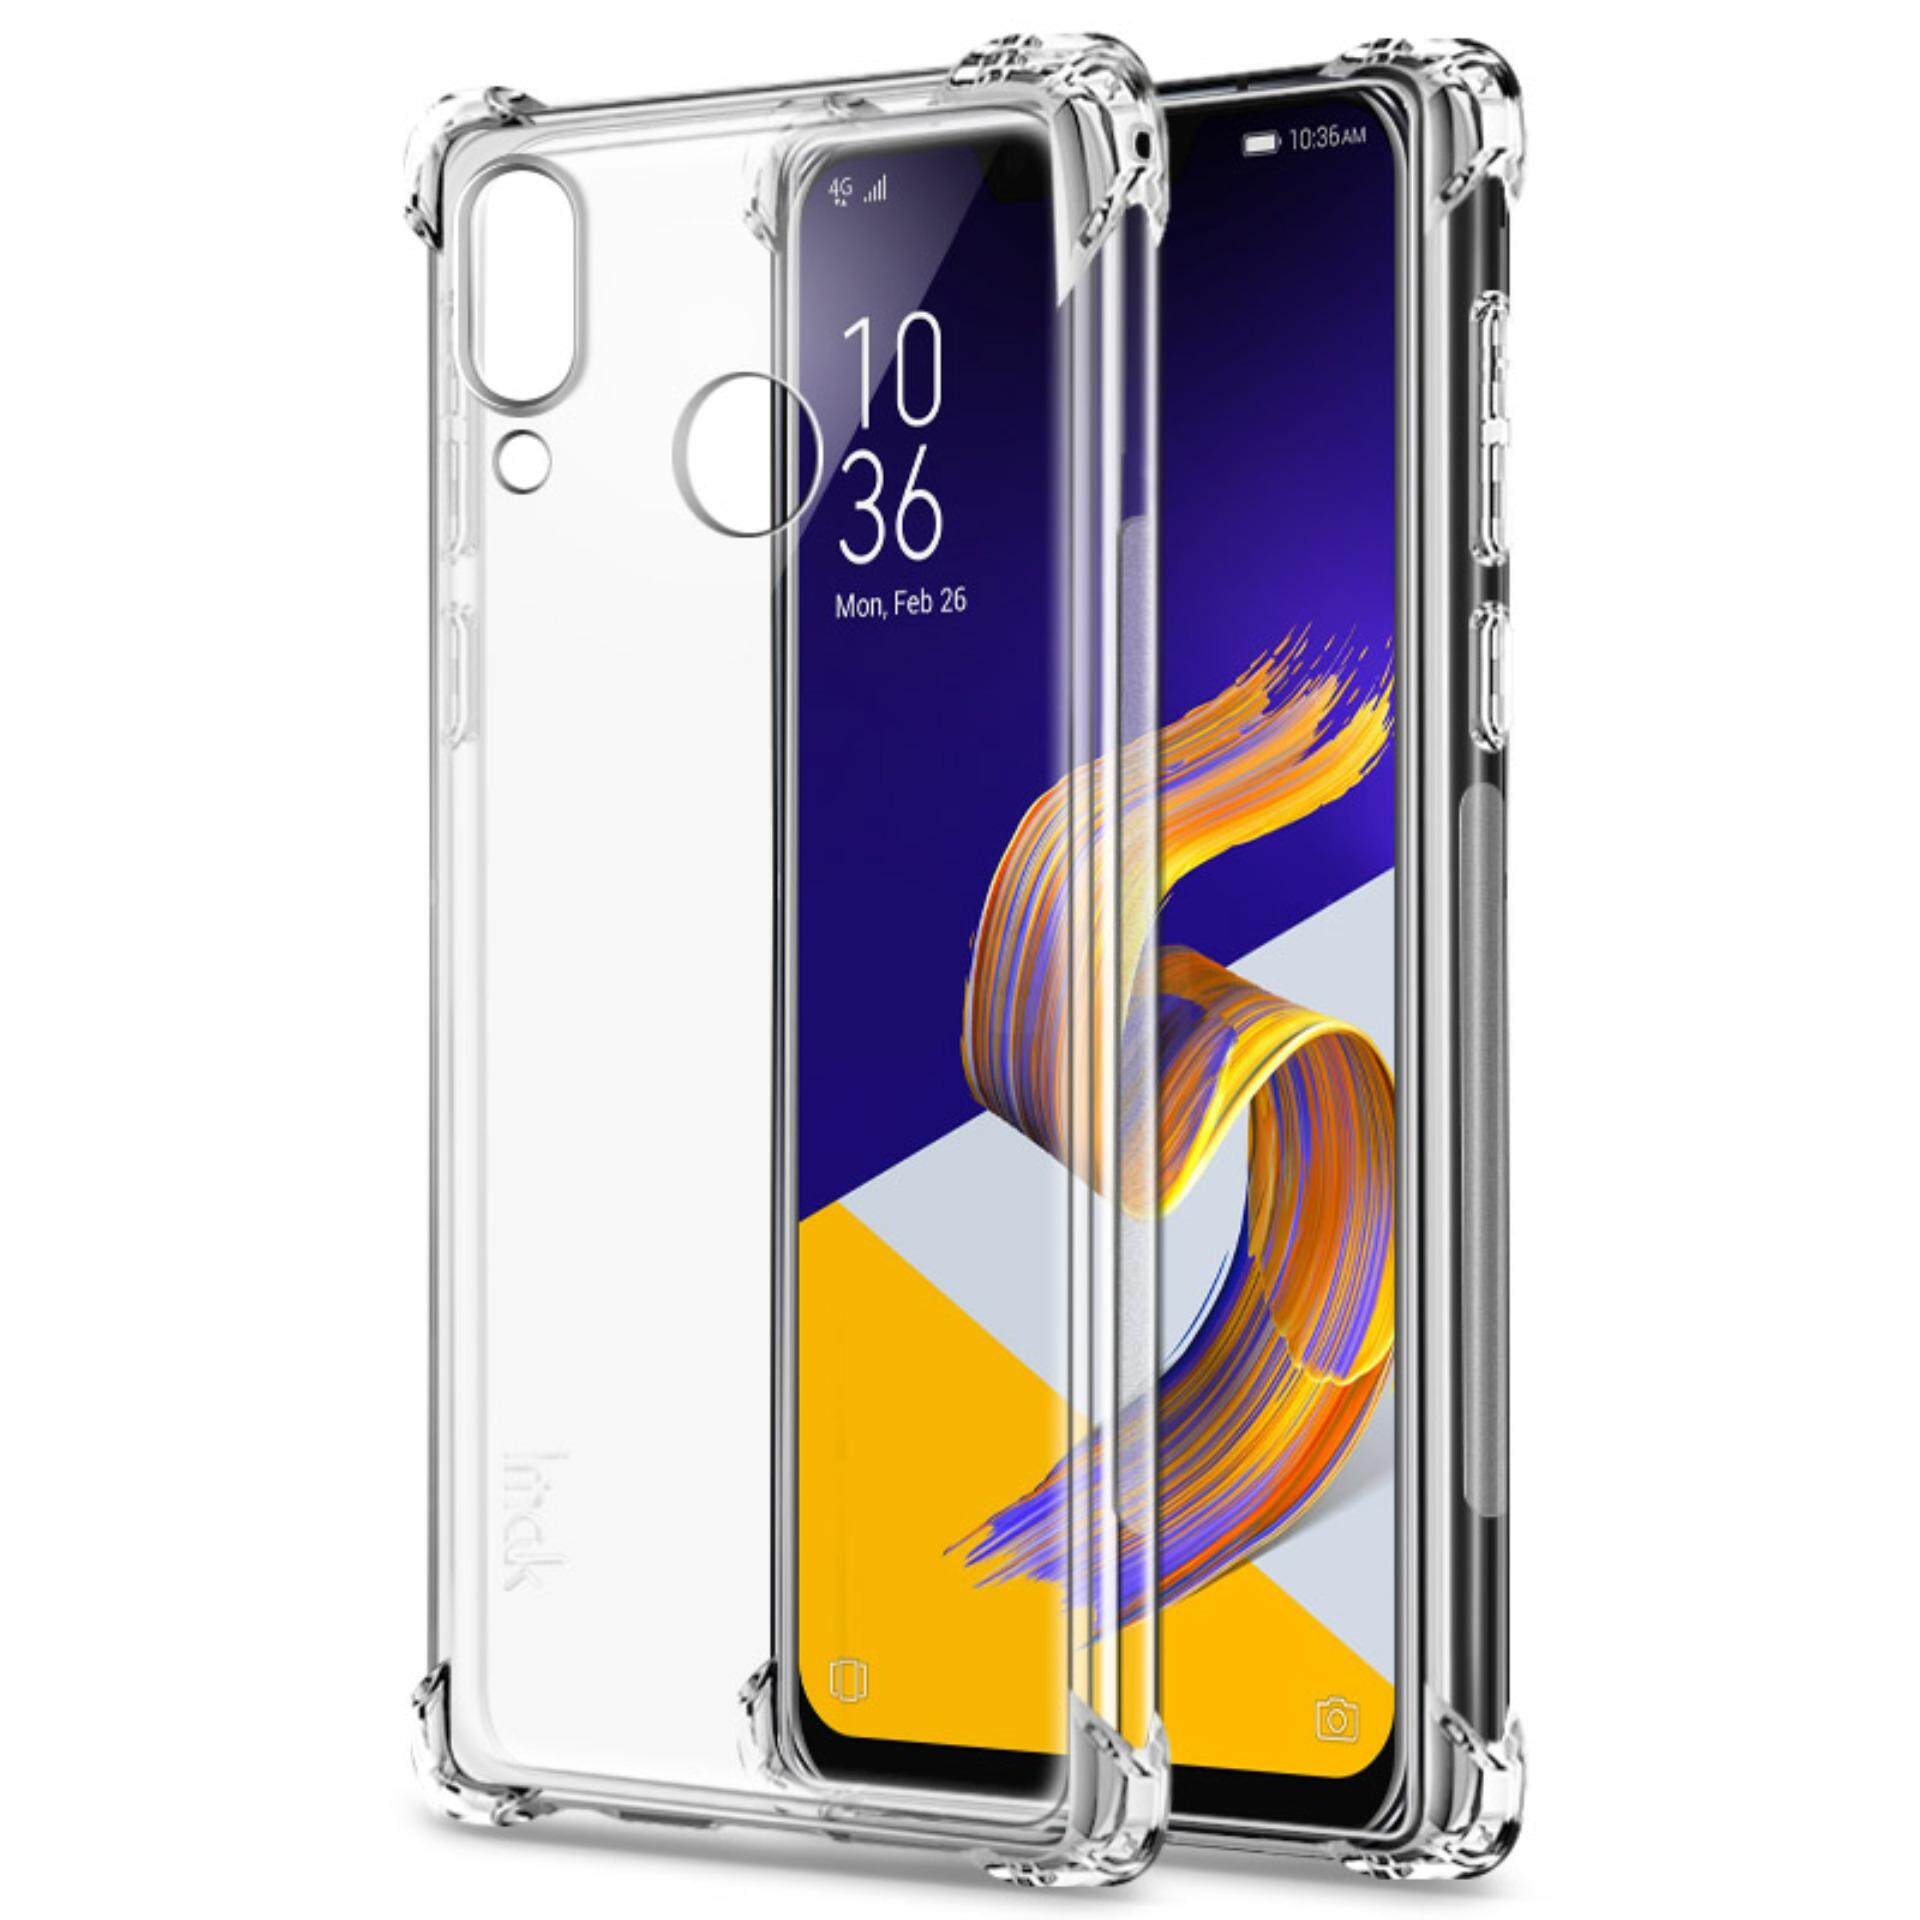 ASUS Zenfone 5 ZE620KL / 5Z ZS620KL Case with Screen Protector, IMAK Transparent Thin Nature Slim Crystal Clear Shock-resistant Shockproof Bumper Soft TPU Protective Shell Back Cover Phone Case Casing for ASUS Zenfone 5 ZE620KL / 5Z ZS620KL